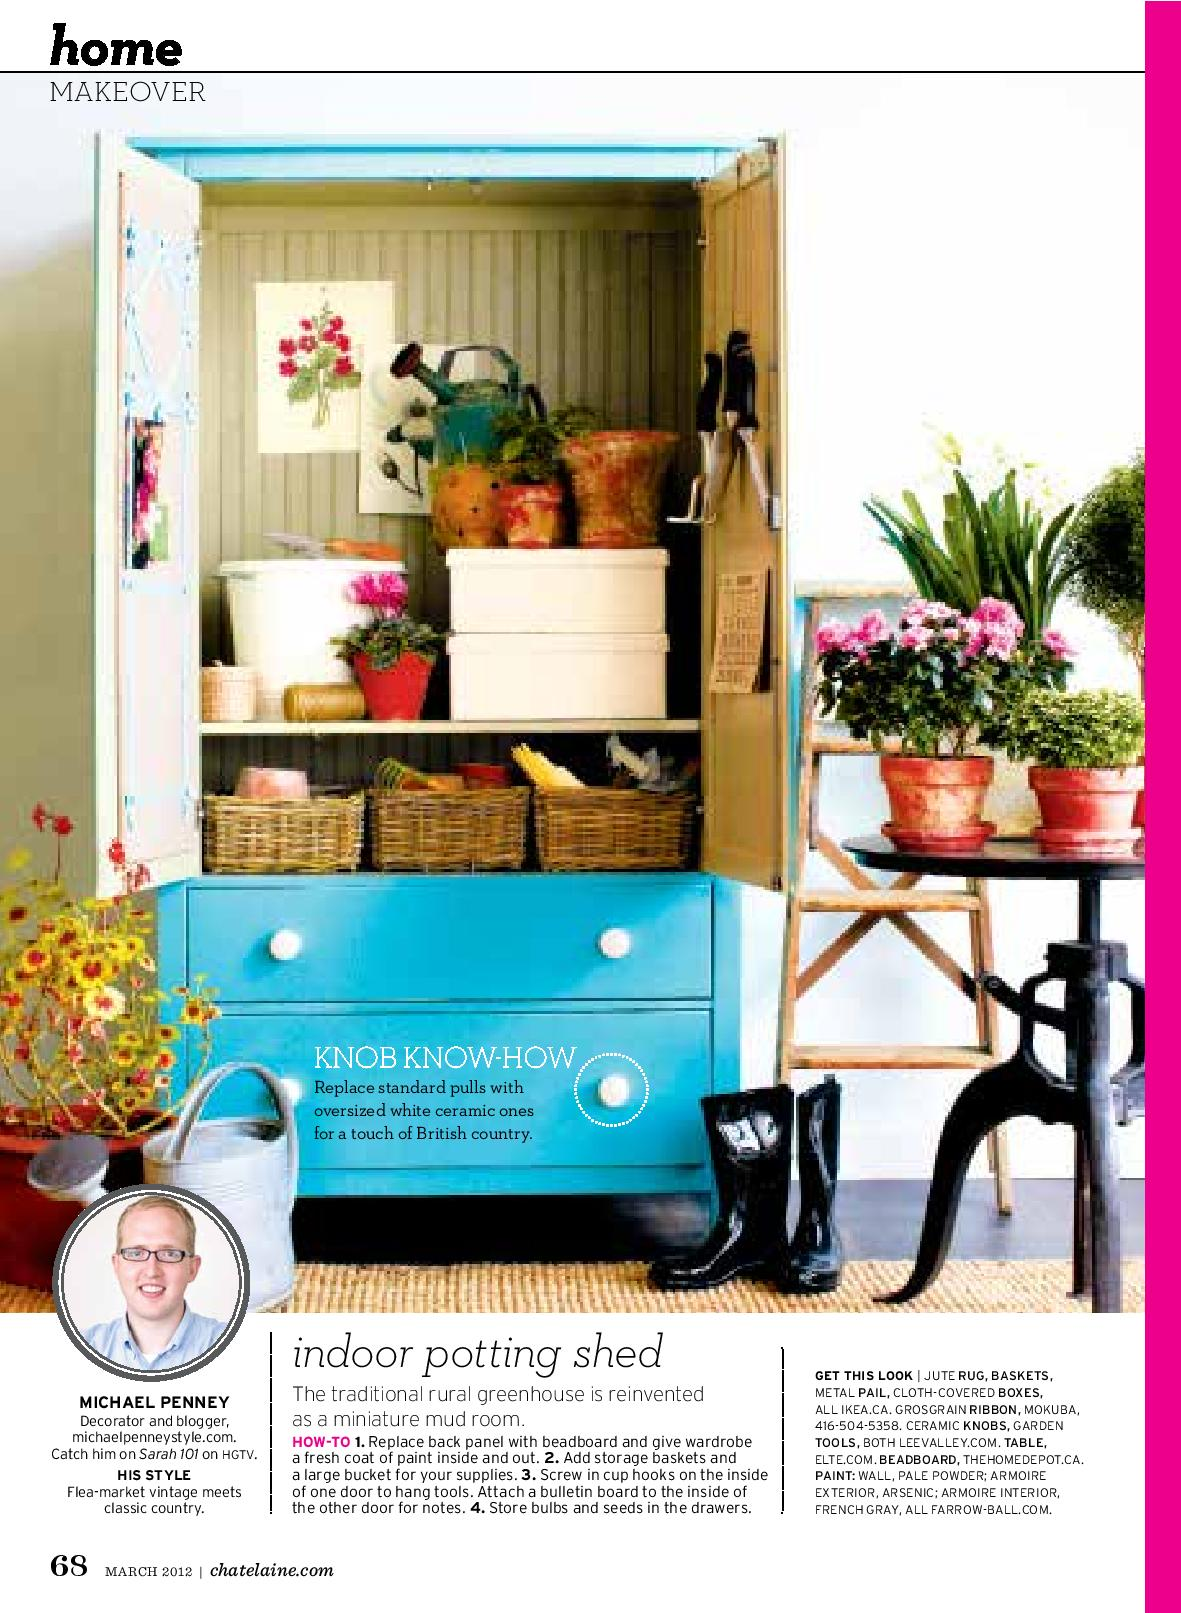 armoires march 2012-page-002.jpg